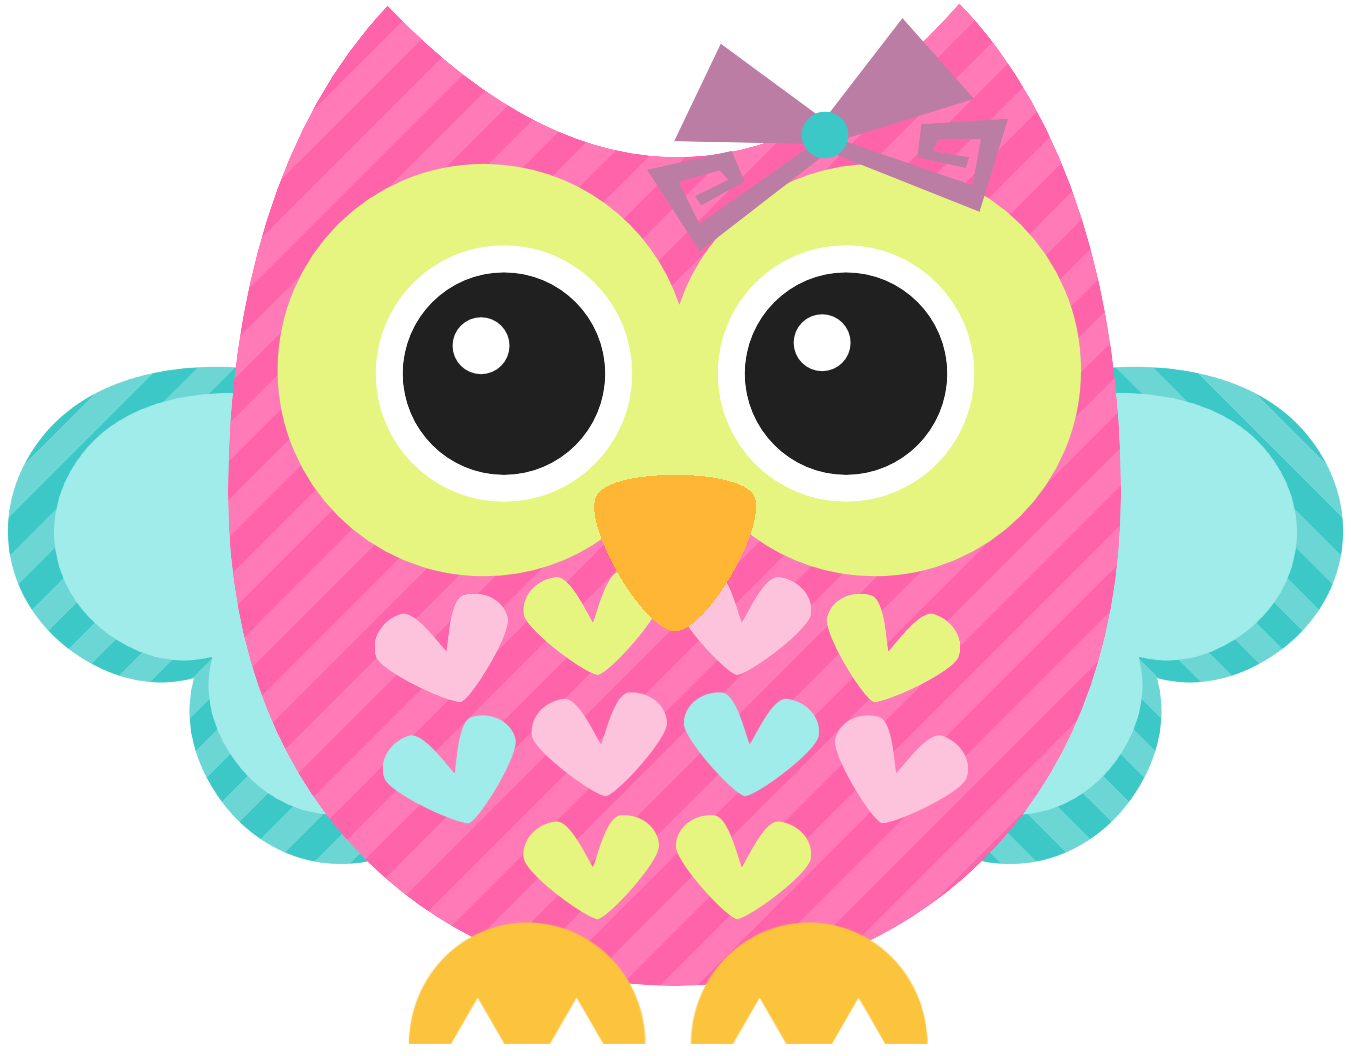 Owls clipart pink. Aves pass ros corujas